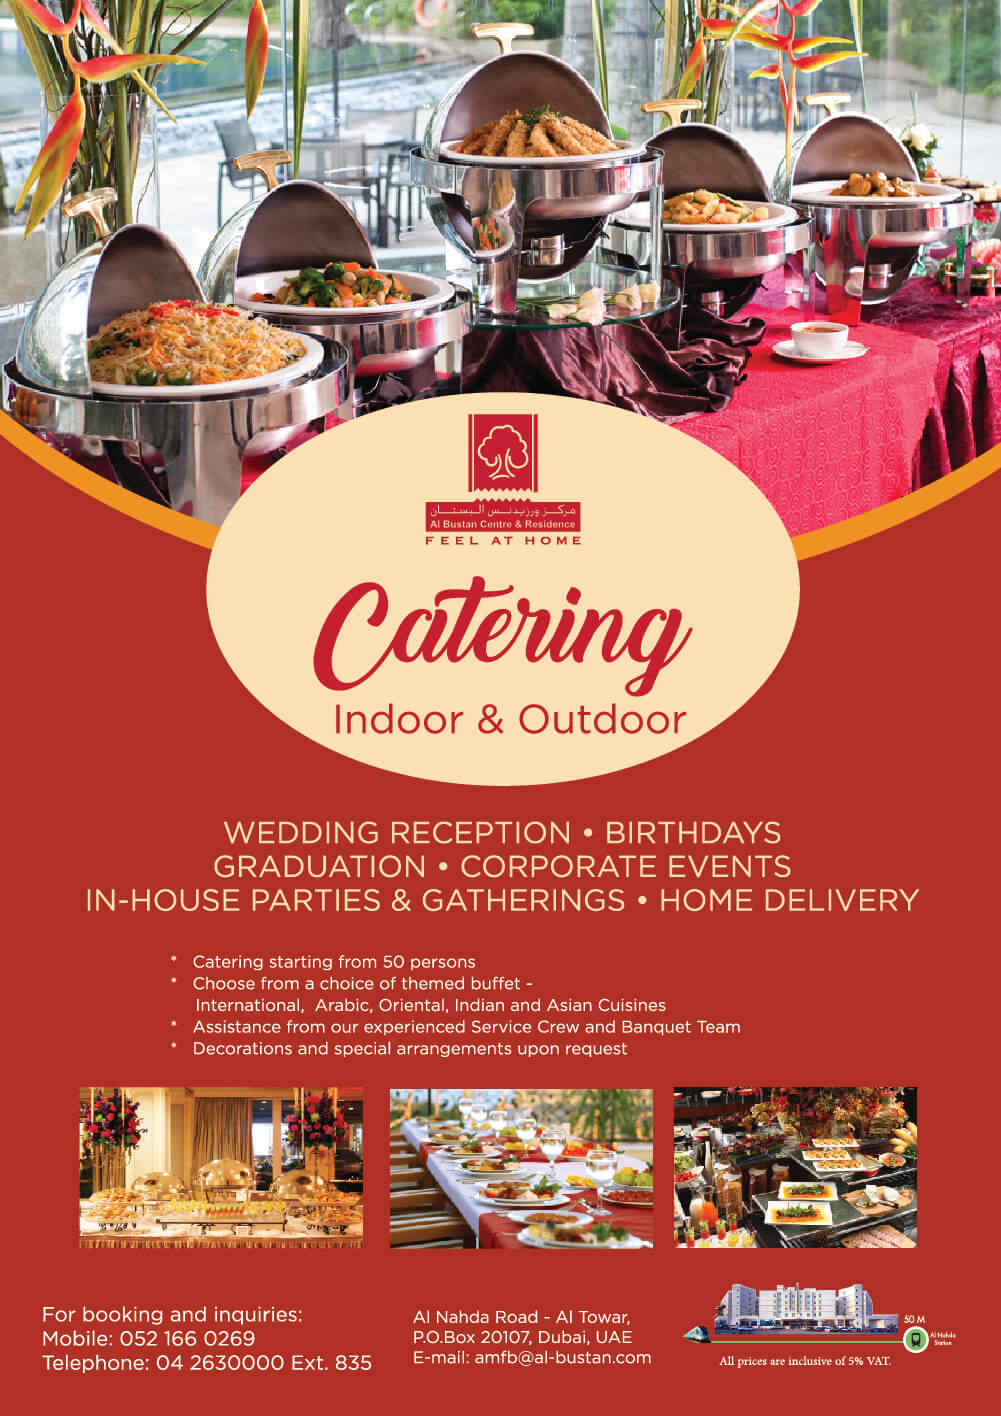 Indoor and Outdoor Catering